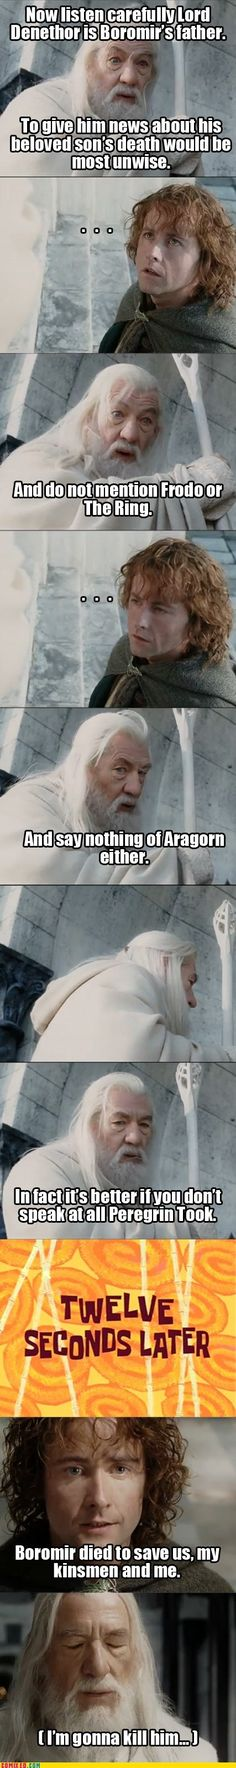 Some one else must also be going on a marathon. Coz all these LOTR memes keep popping up. :) Its great